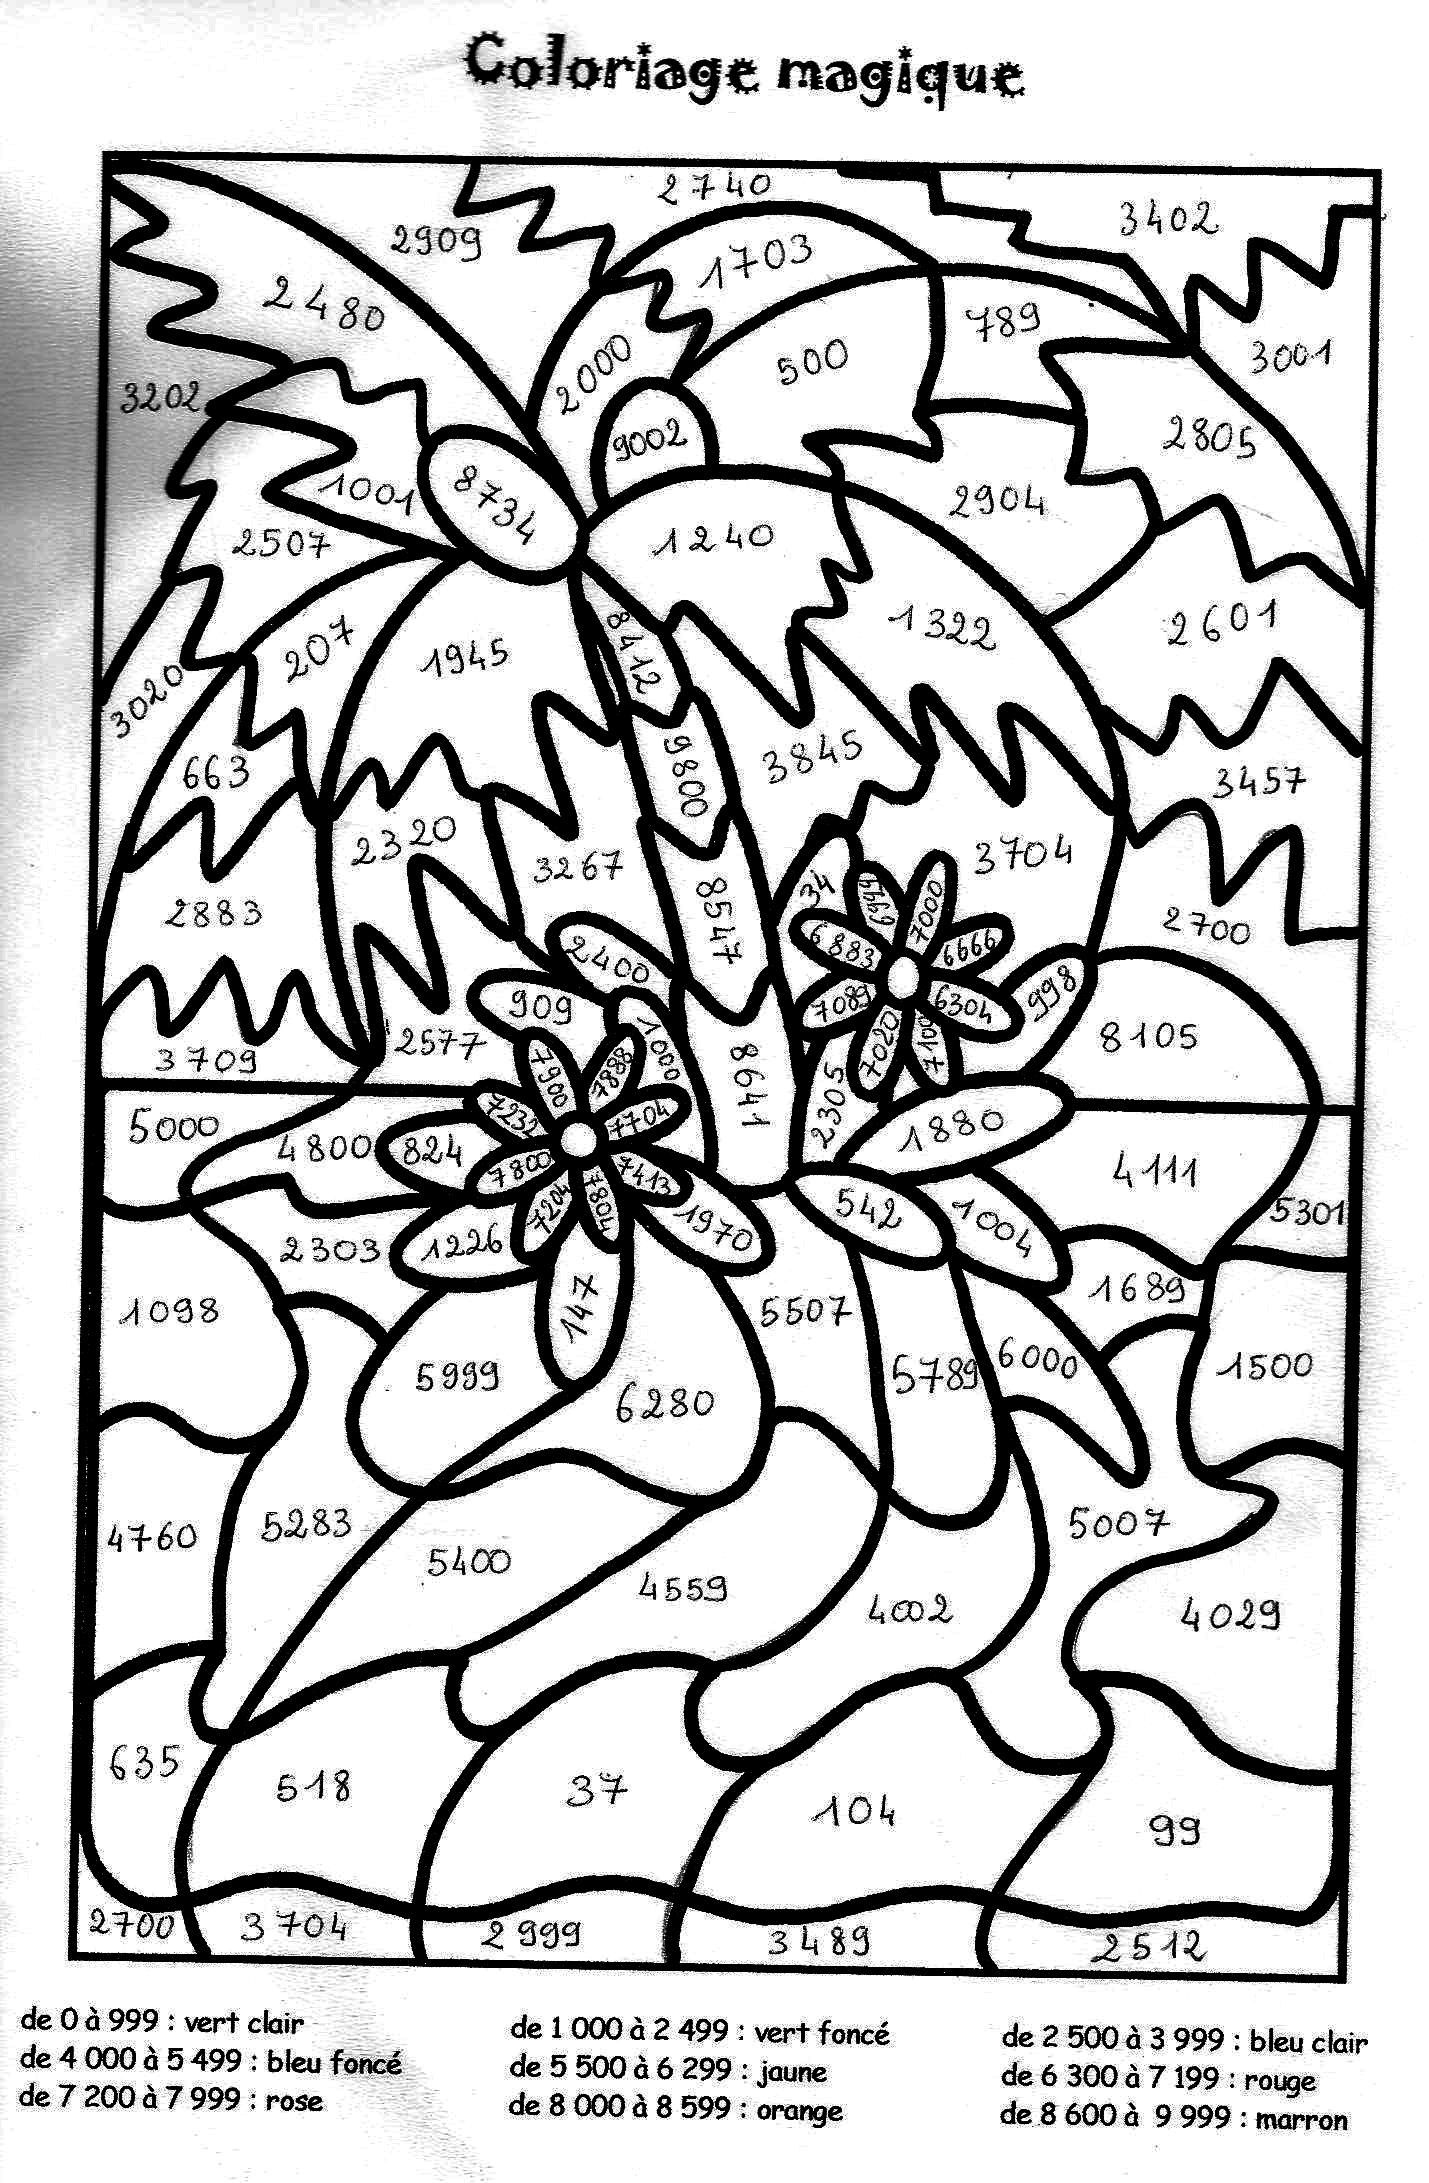 Coloriage magique cm2 colorier dessin imprimer cole coloriage magique multiplication - Coloriage de multiplication ...